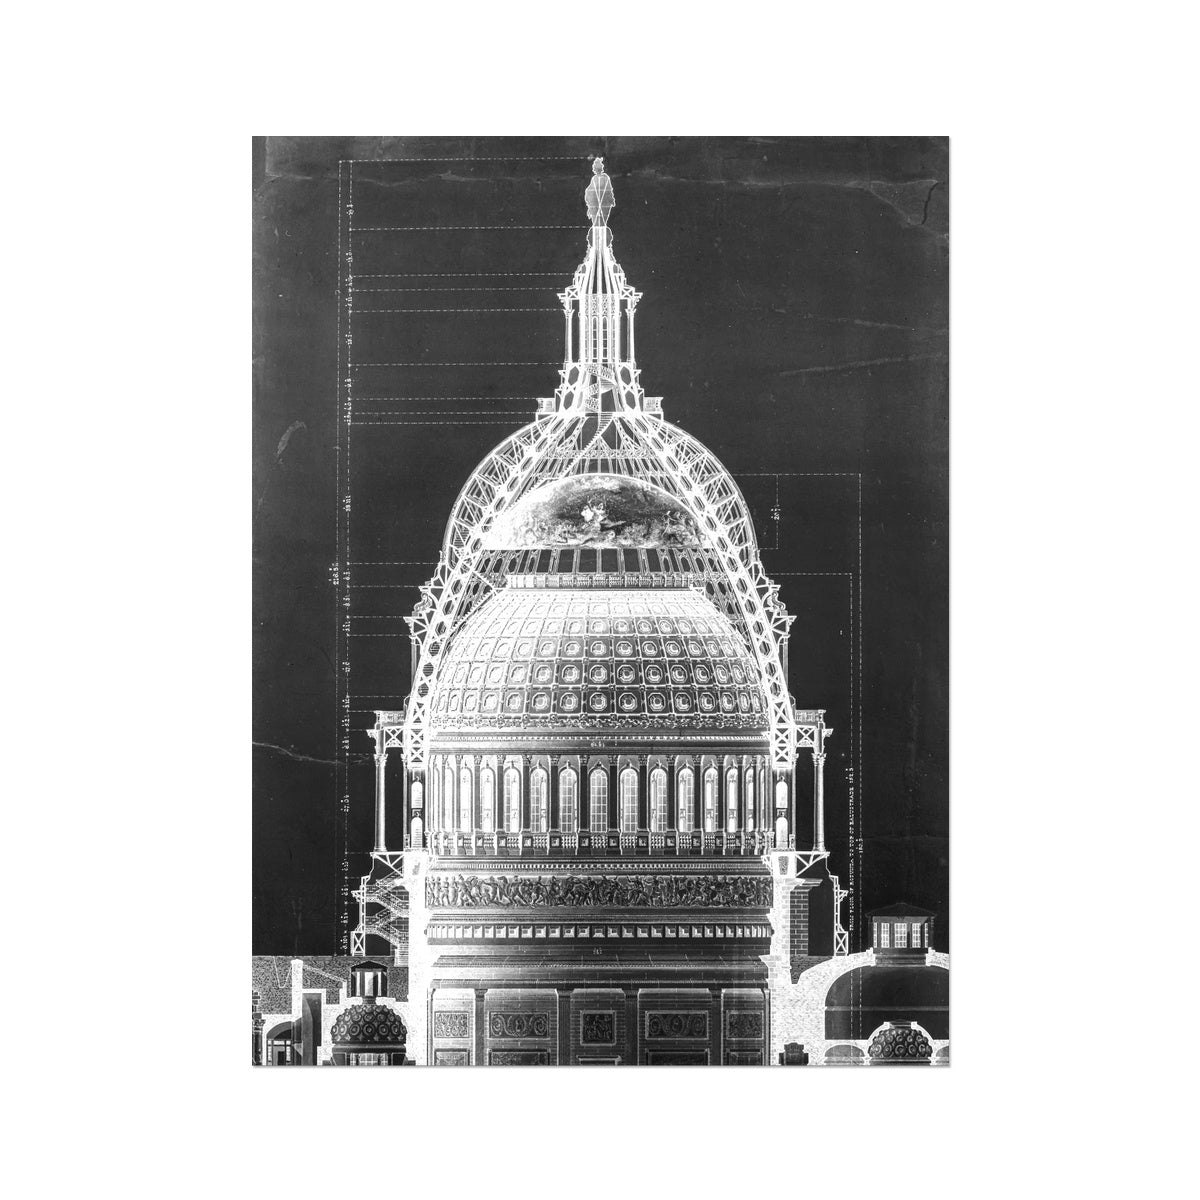 The U.S. Capitol Building - Dome Cross Section - Black -  Etching Paper Print